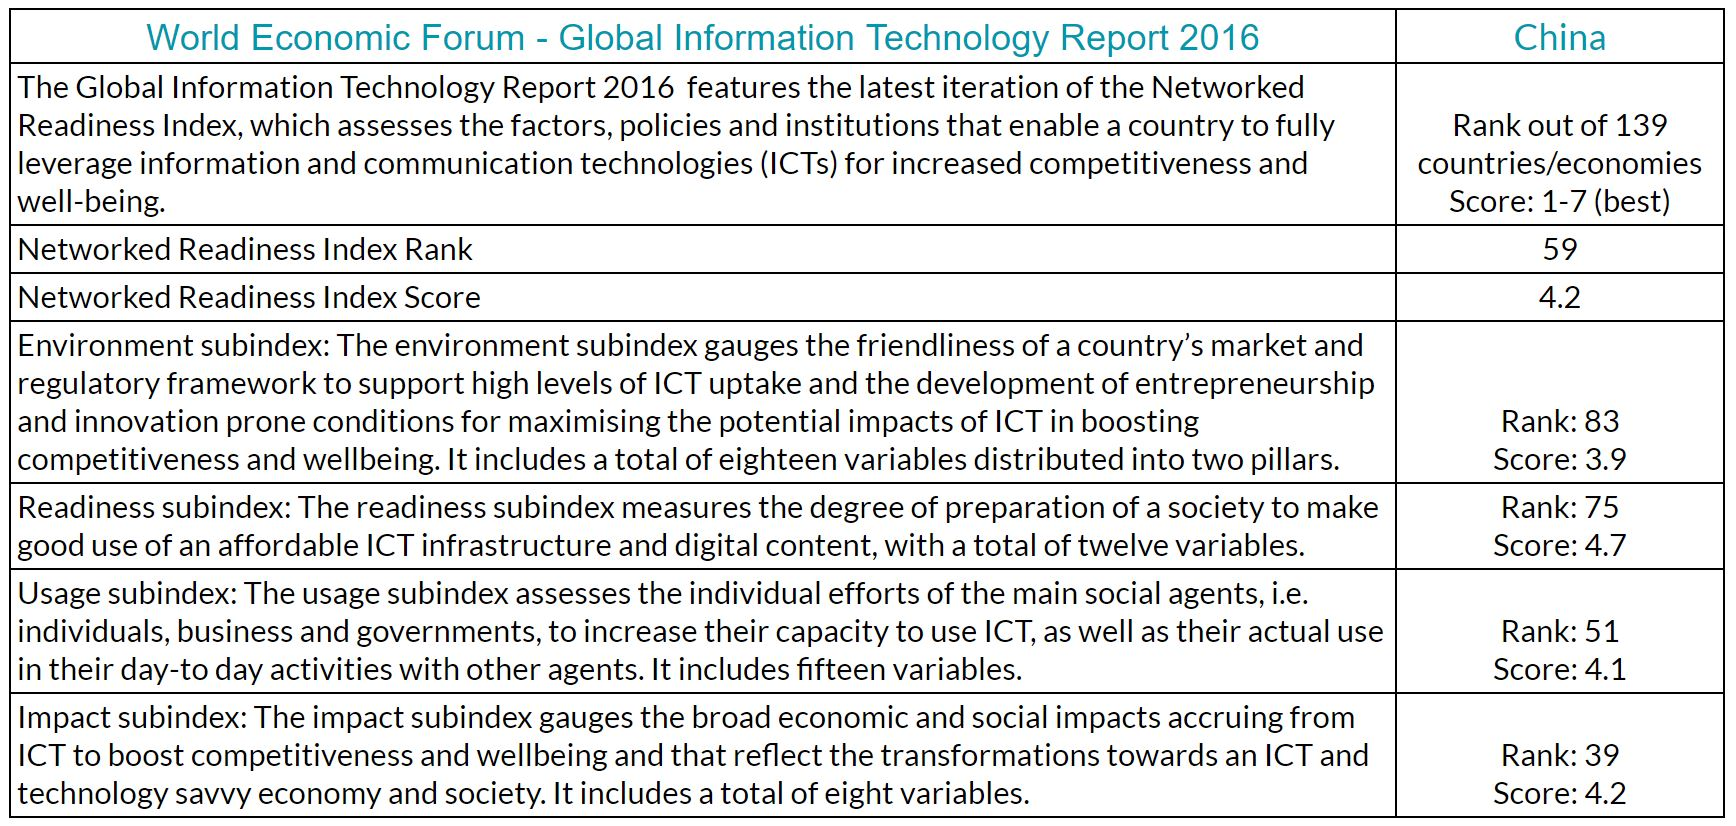 World Economic Forum Global IT Report results for China